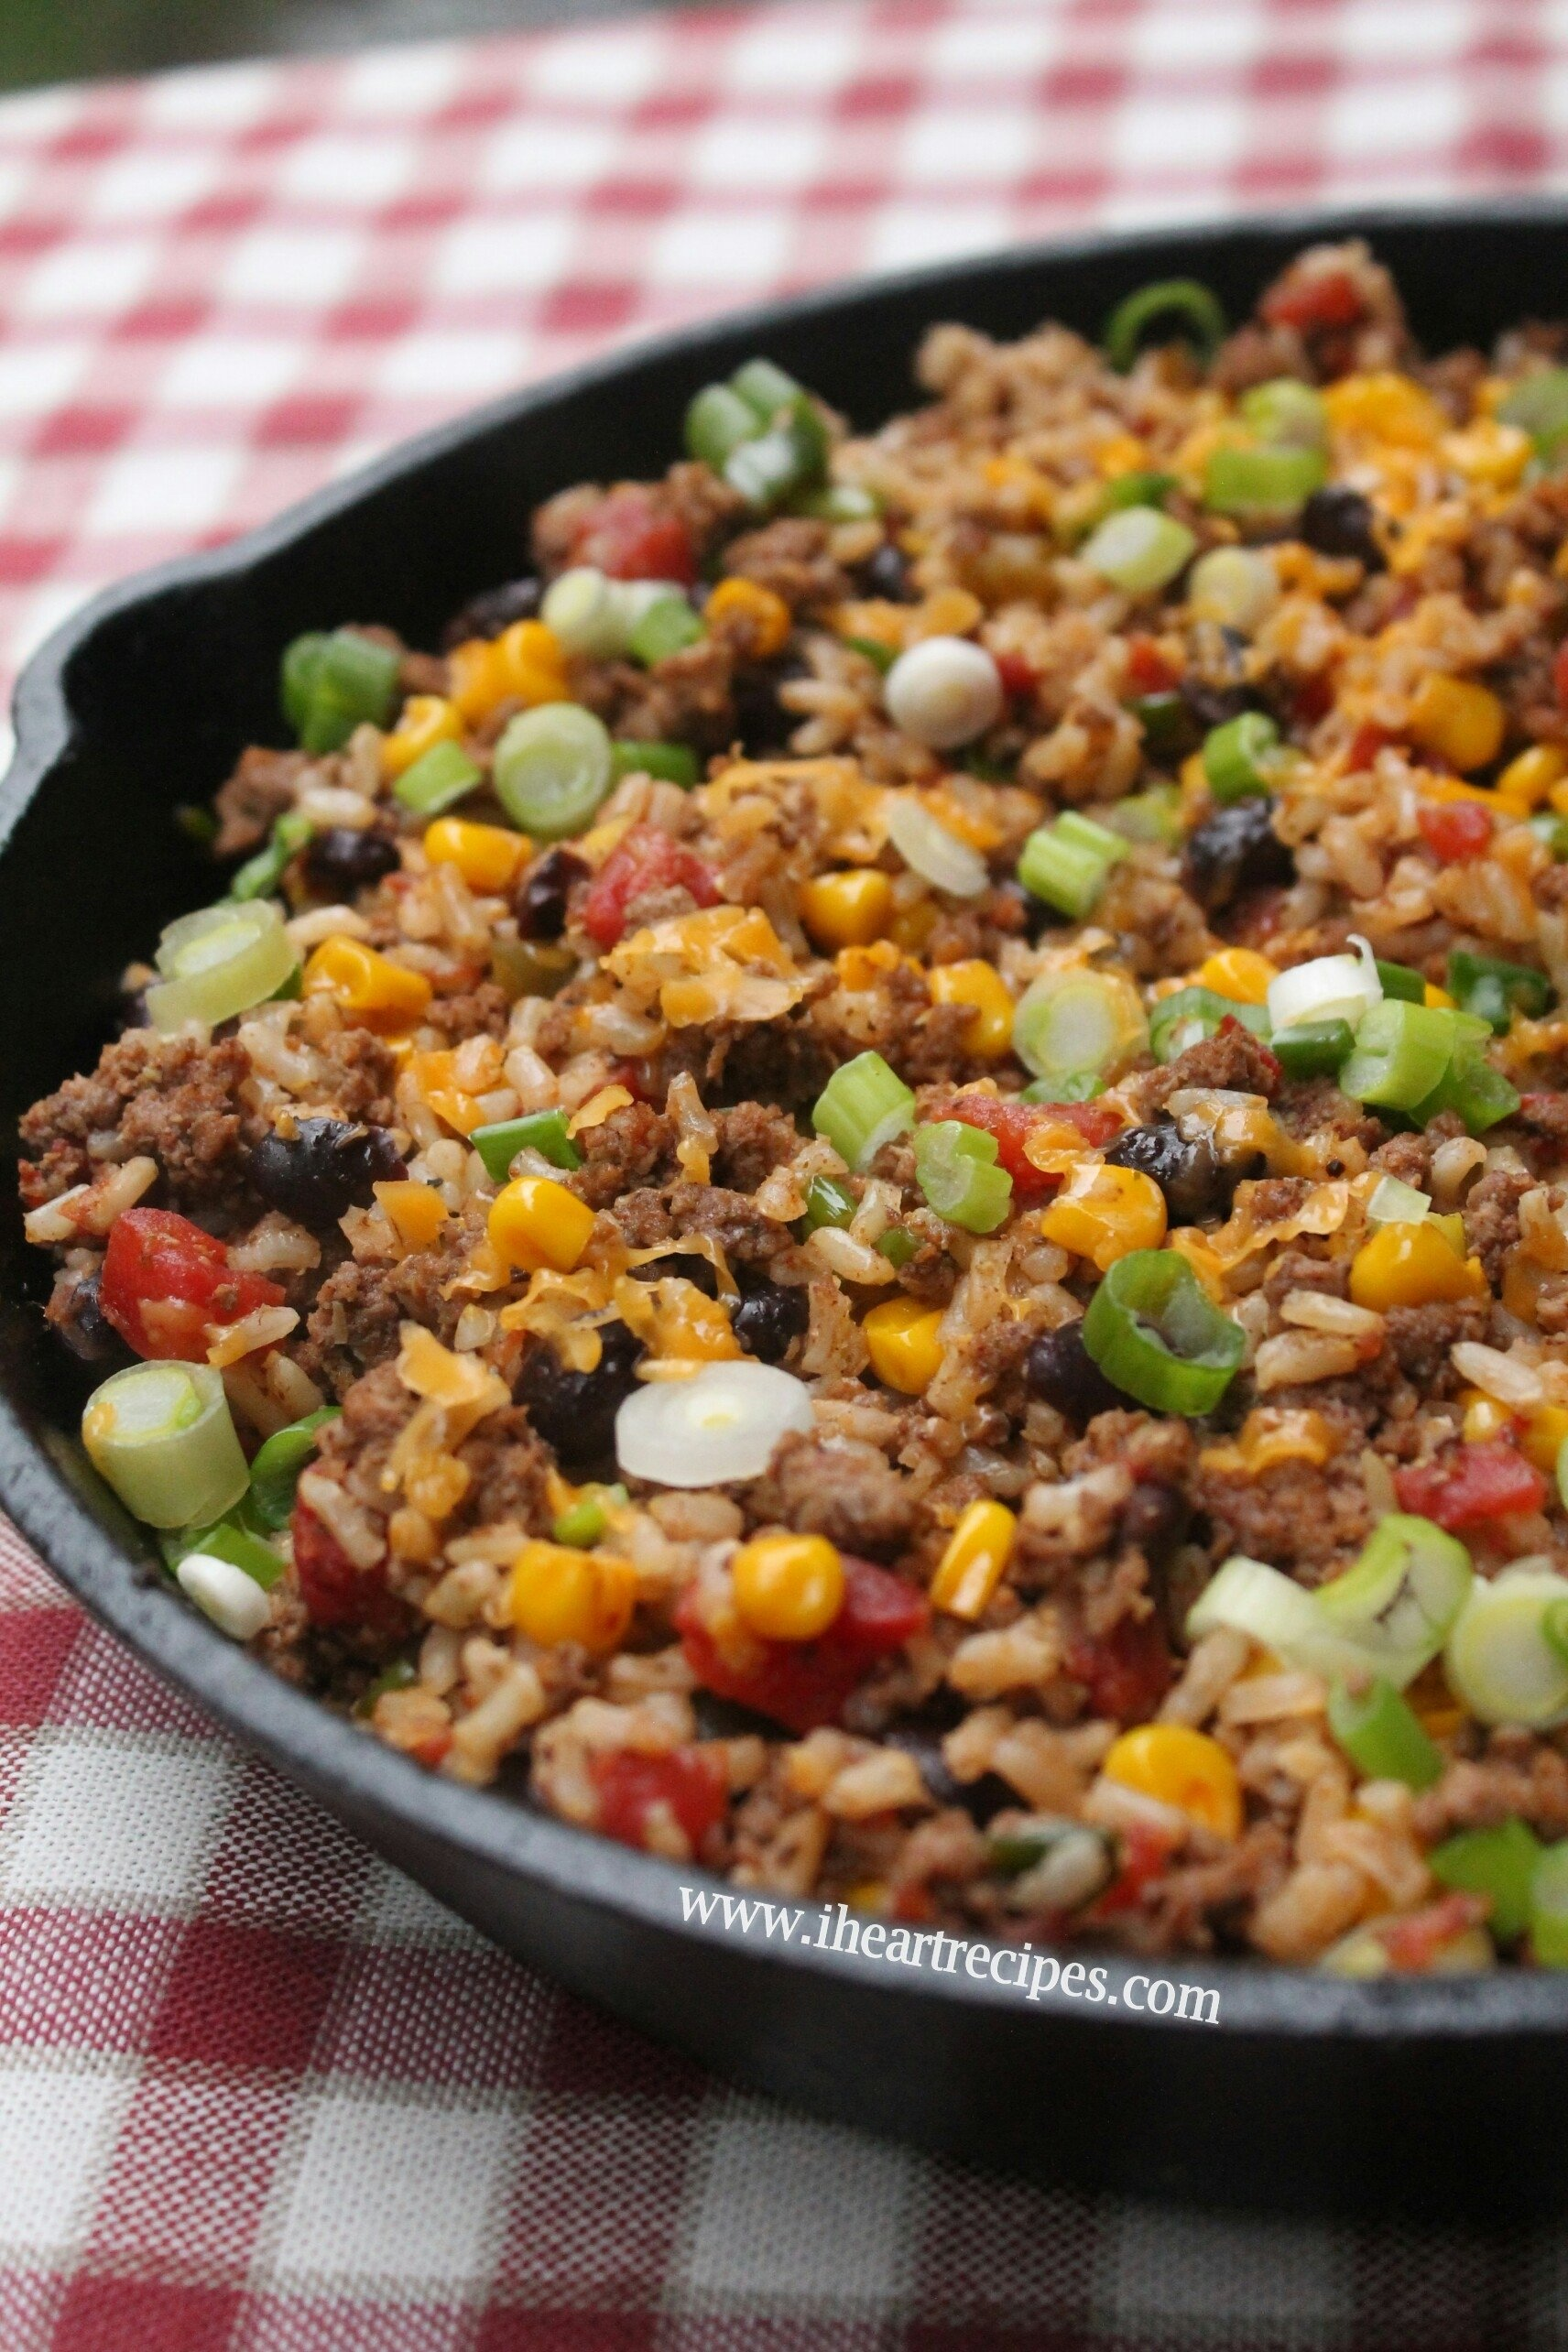 10 Fashionable Simple Dinner Ideas With Ground Beef tex mex beef skillet i heart recipes 5 2020